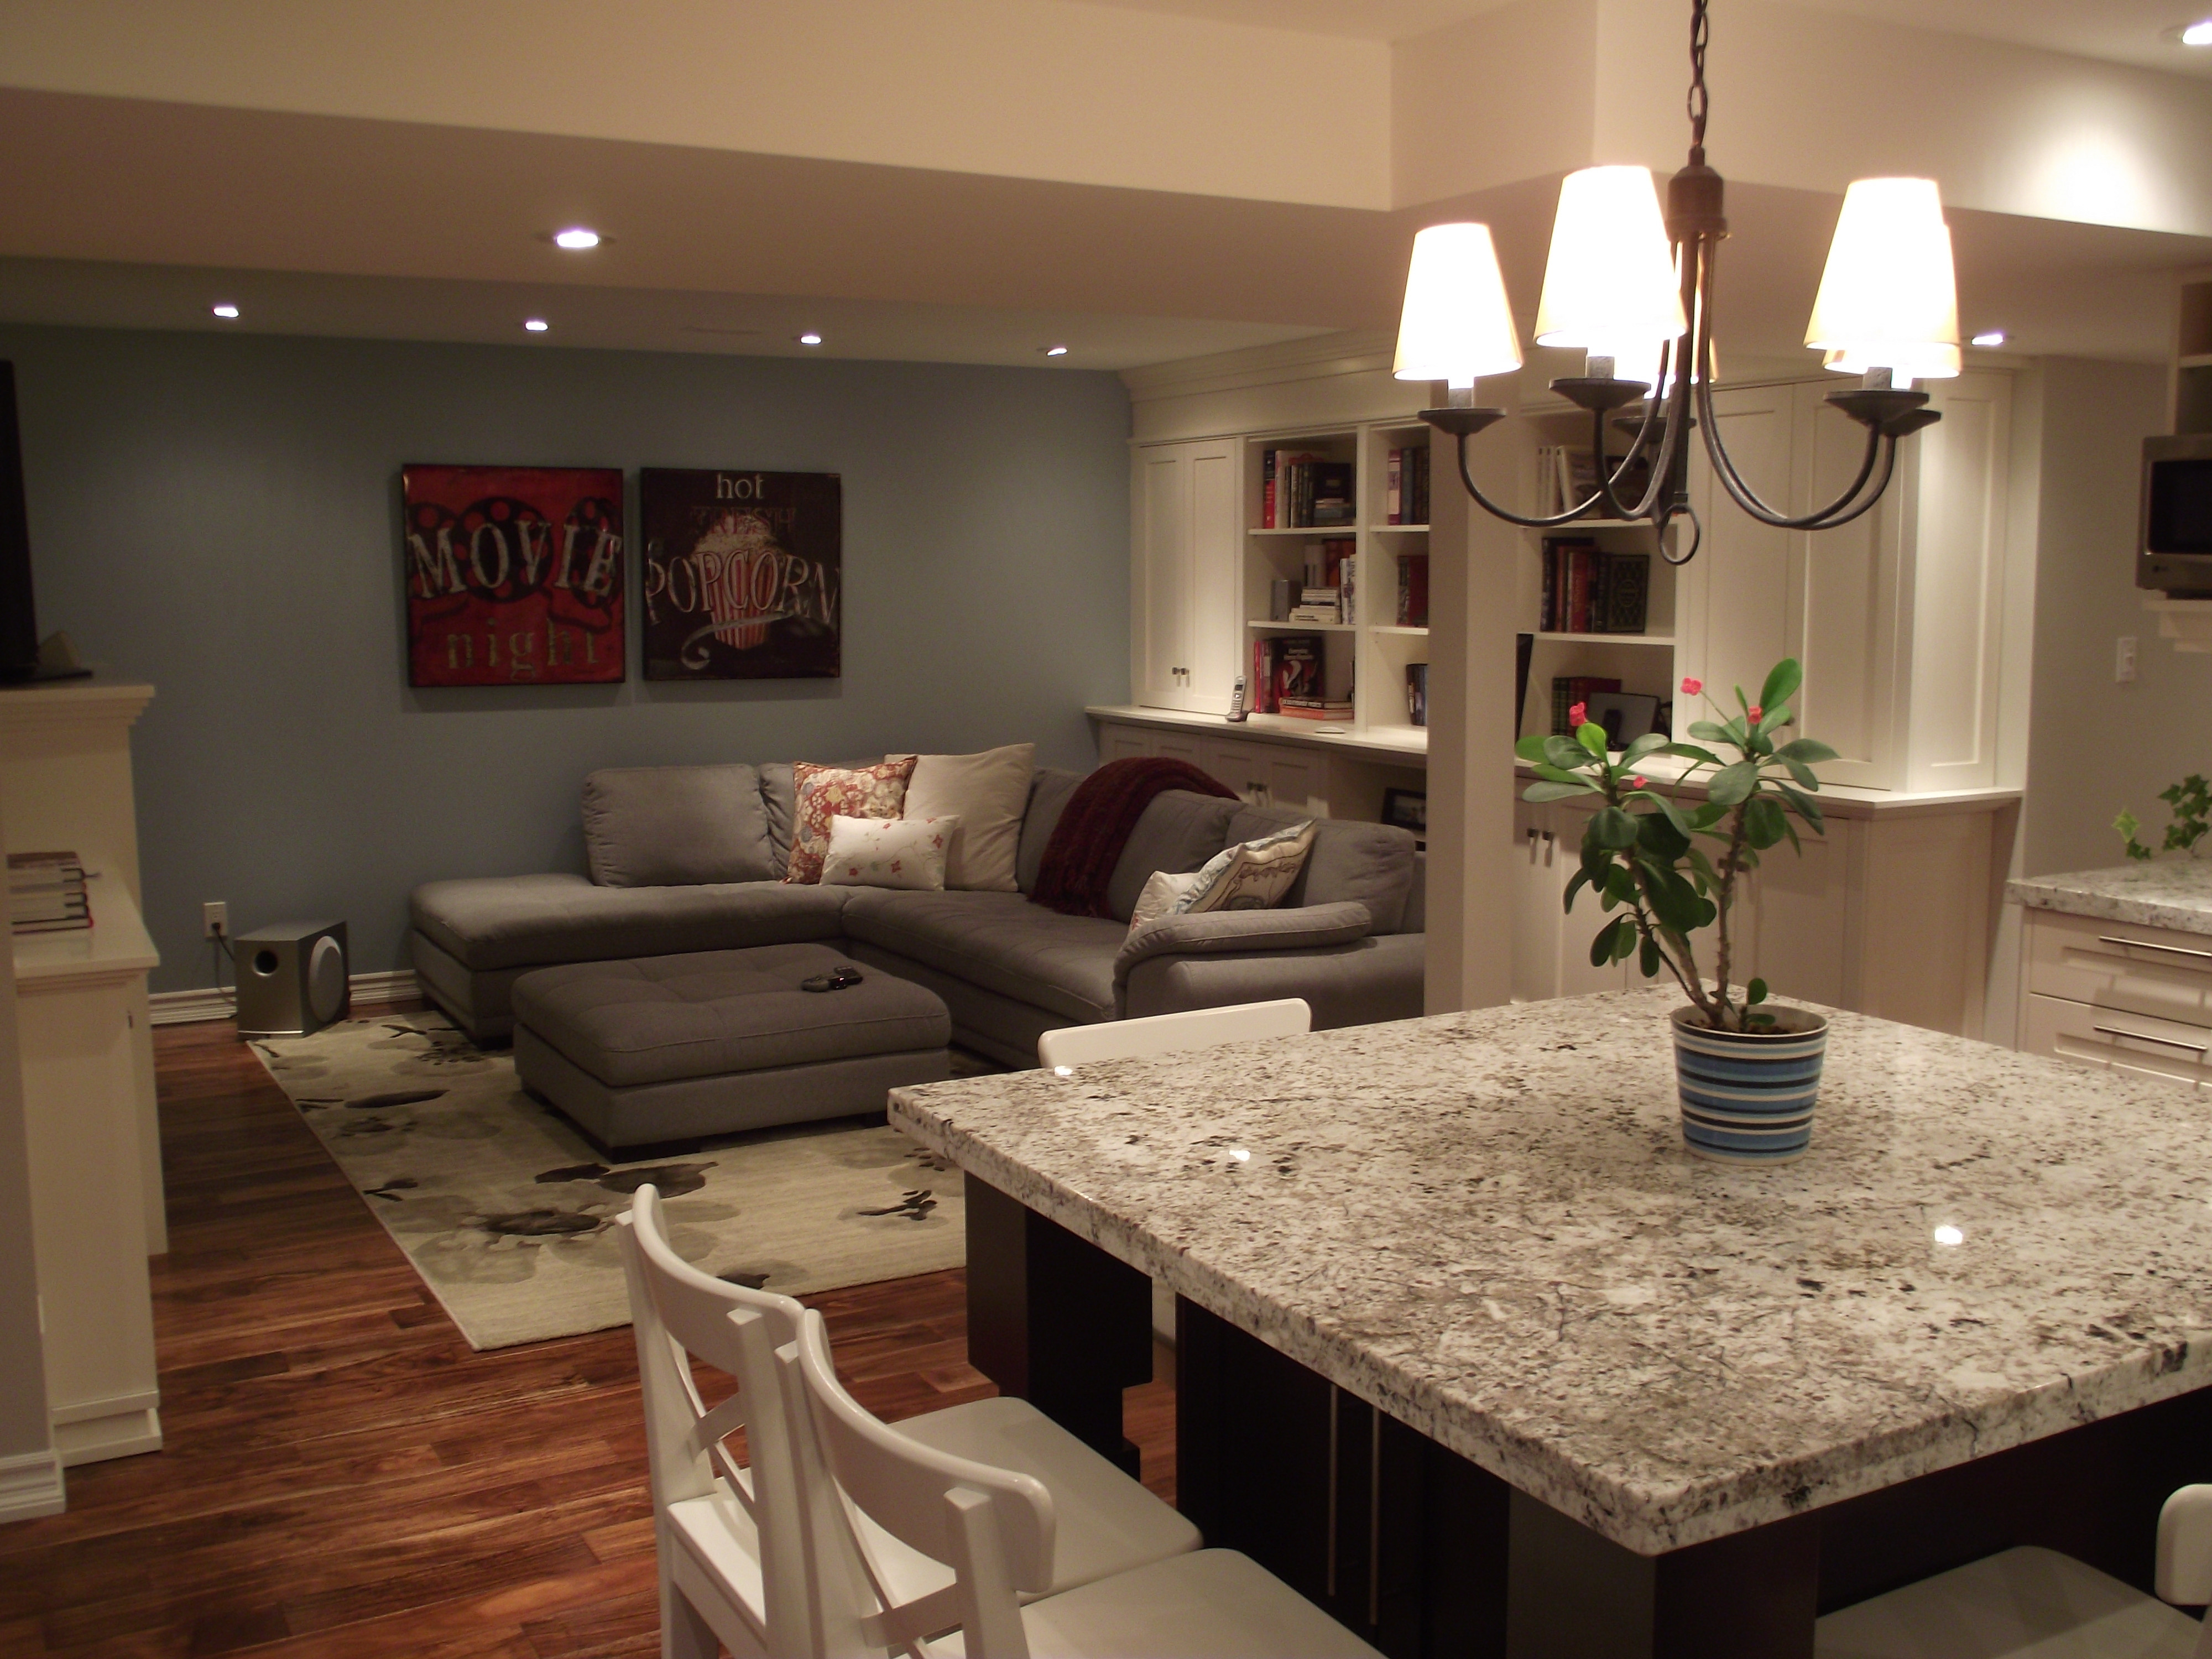 Best ideas about Pinterest Basement Ideas . Save or Pin Basement Family Room And Kitchenette DIY Ideas Pinterest Now.